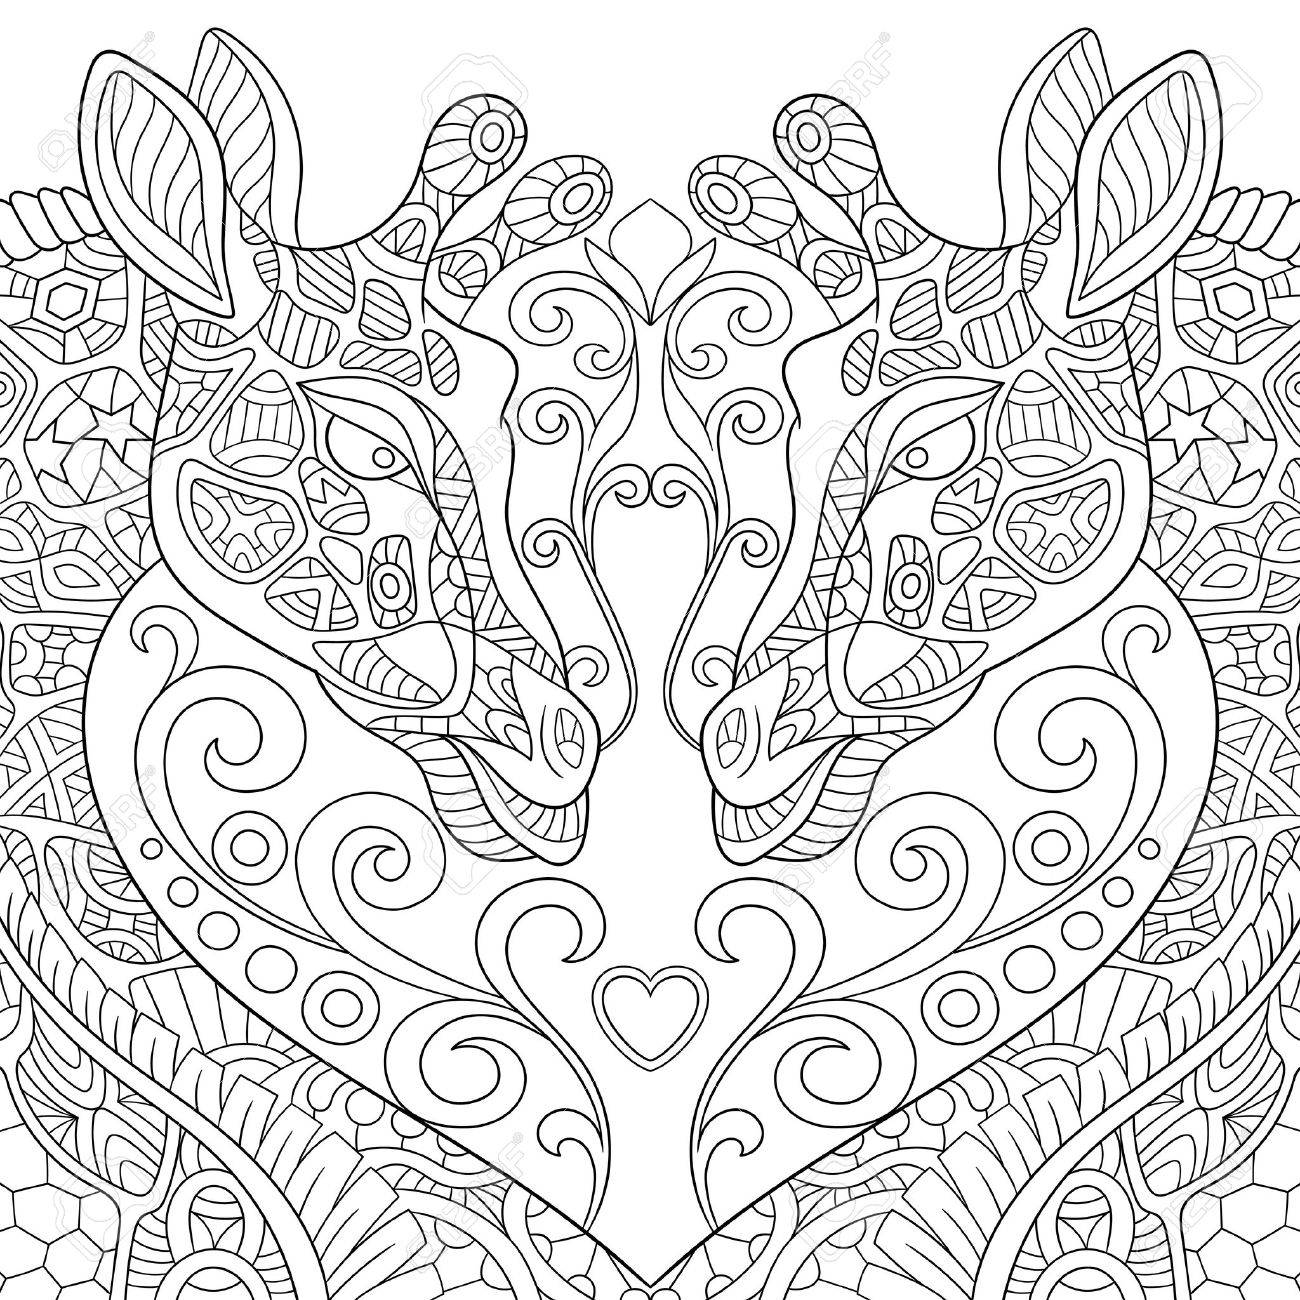 Stylized Two Cartoon Lovely Giraffes With A Heart Sketch For Adult Antistress Coloring Page